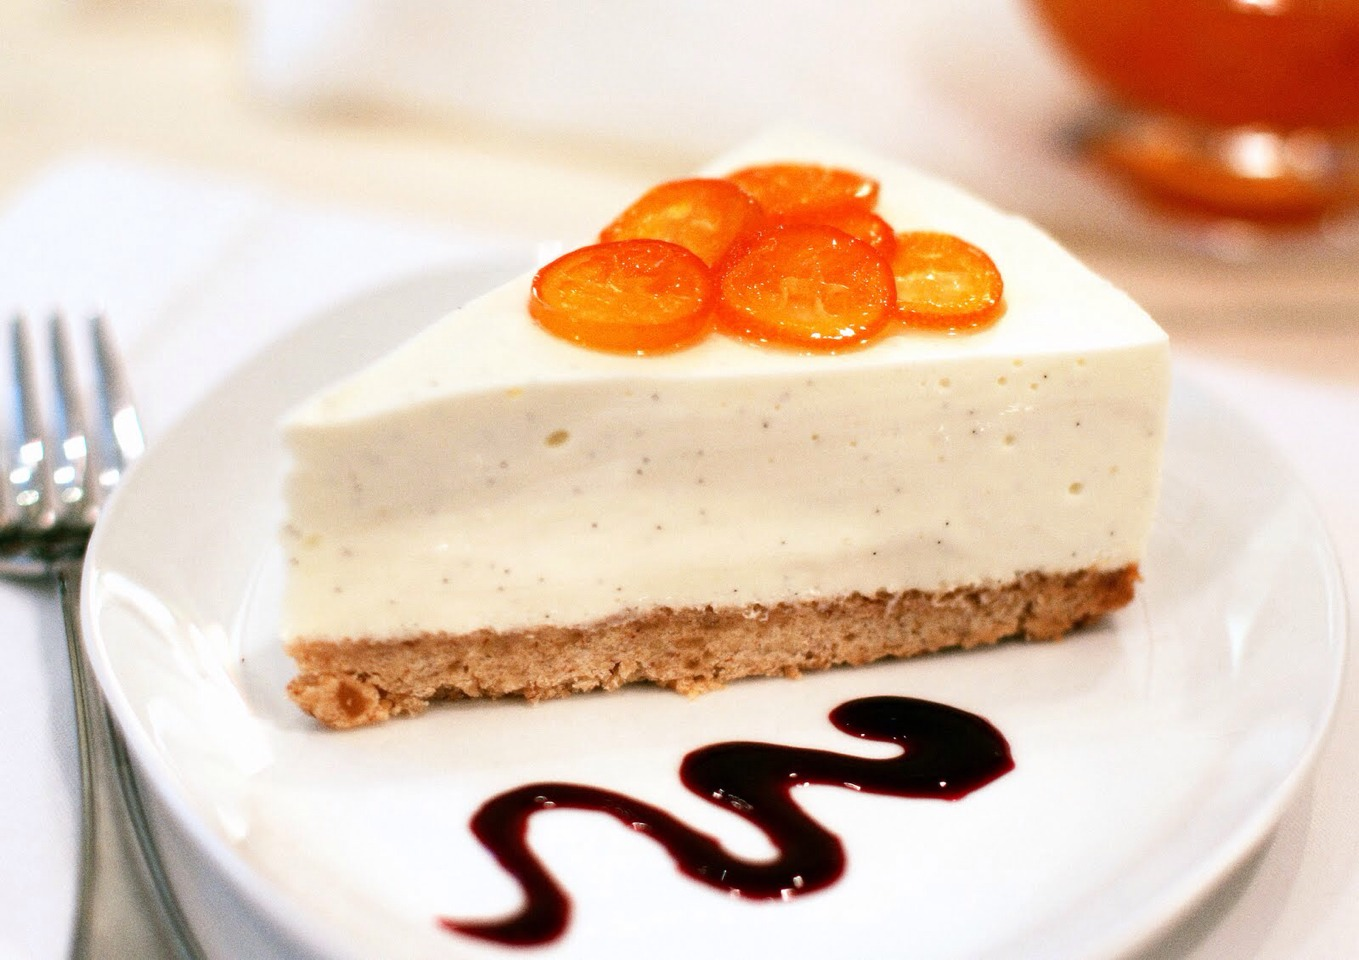 Bake in preheated oven for 1 hour. Turn the oven off, and let cake cool in oven with the door closed for 5 to 6 hours; this prevents cracking. Chill in refrigerator until serving.